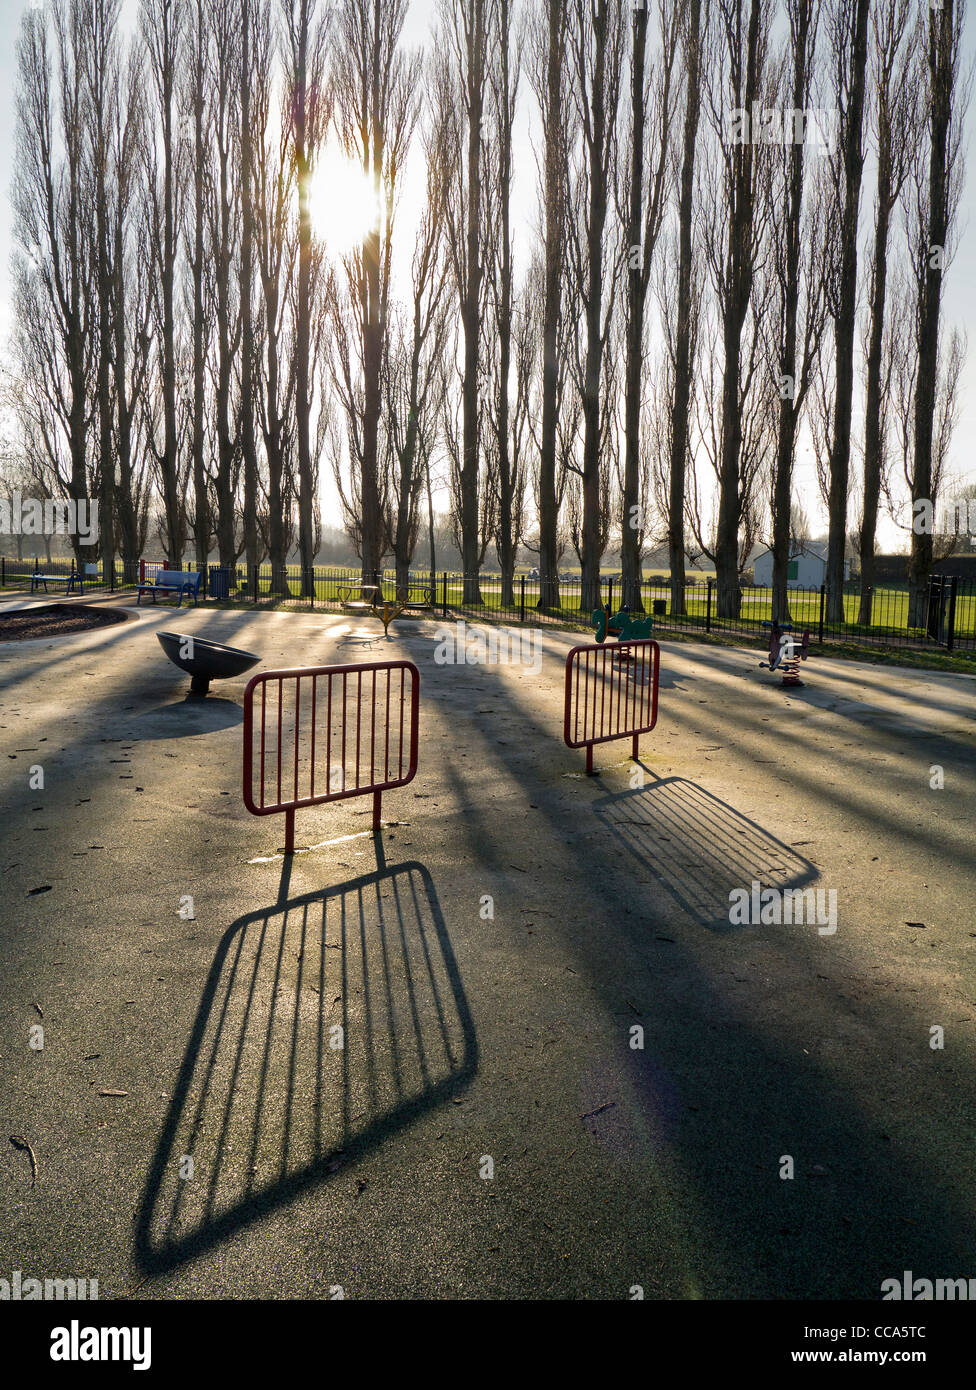 Deserted playground in Abbey Fields, Abingdon - winter morning 8 - Stock Image